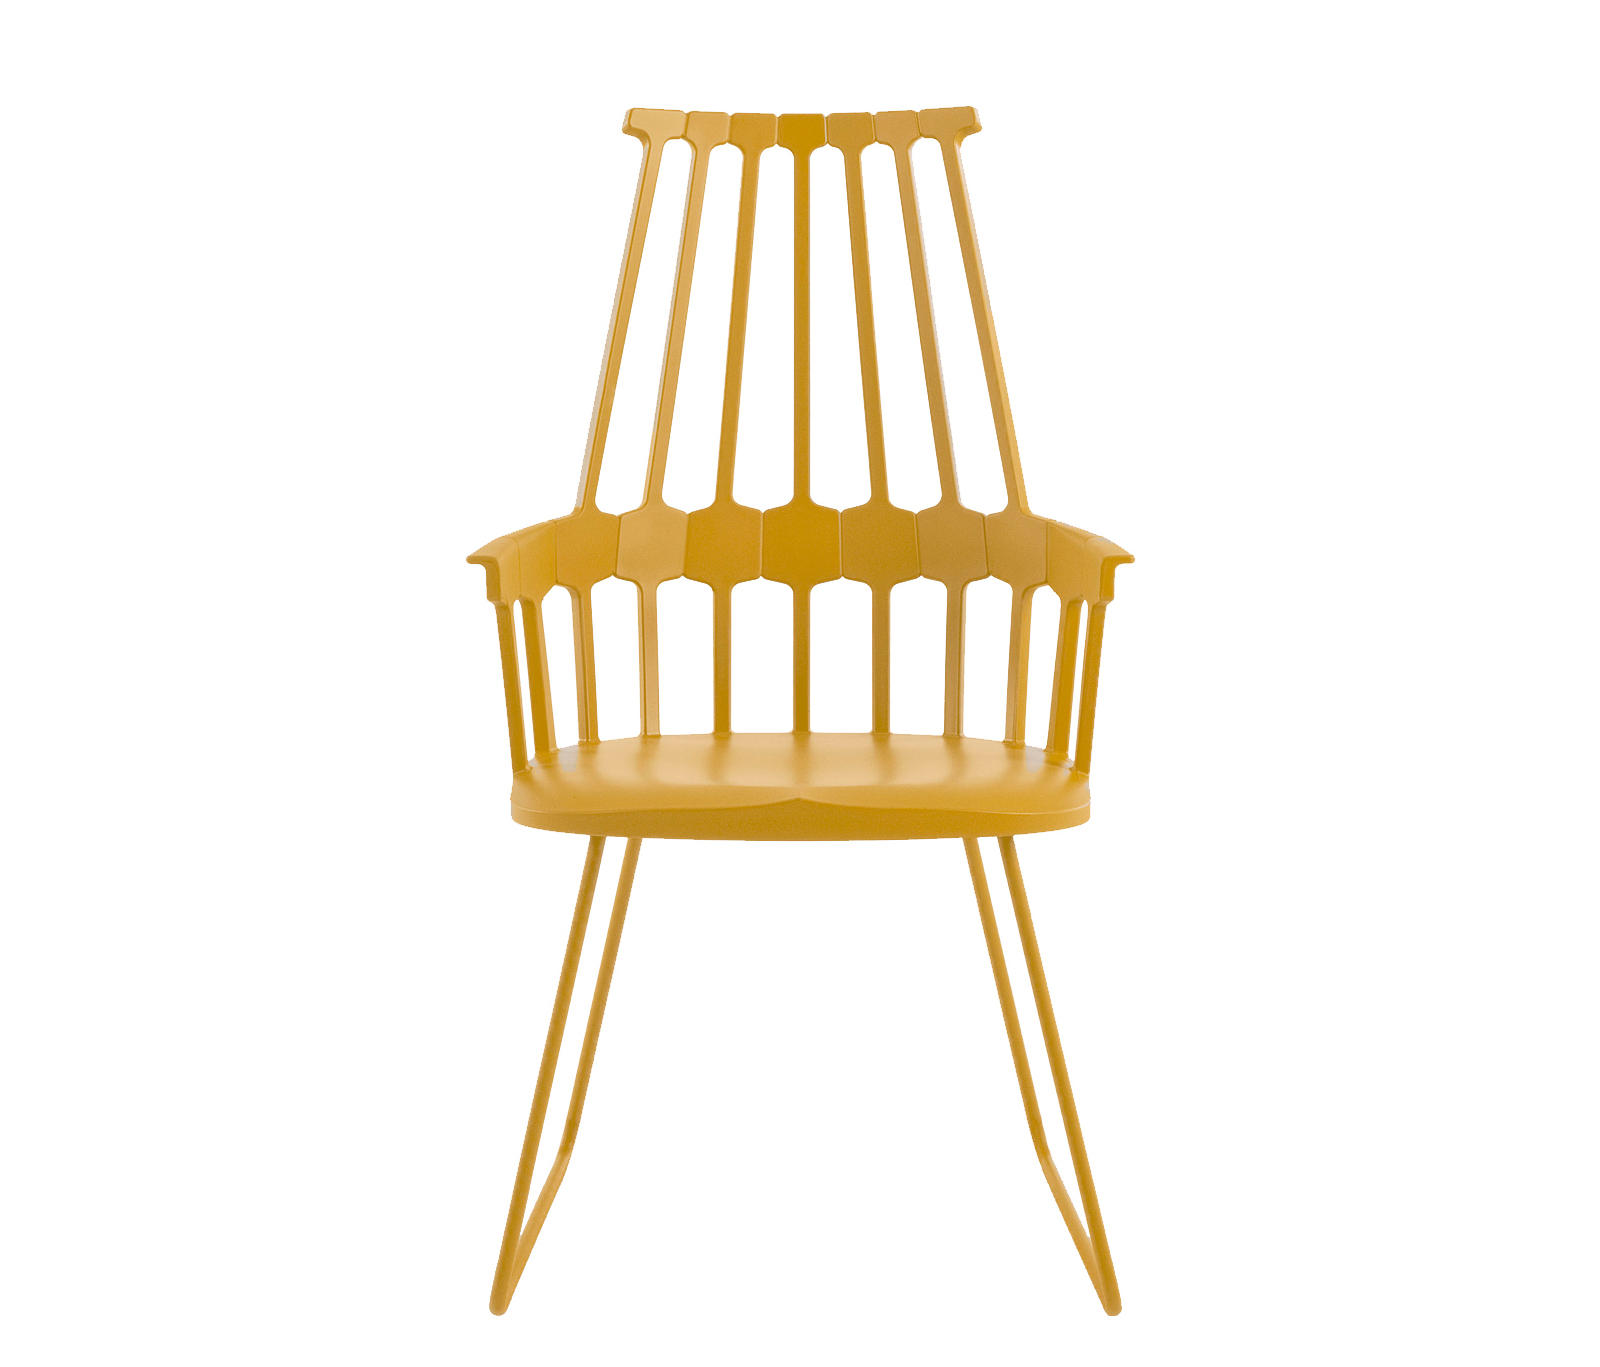 BACK CHAIR Chairs from Kartell